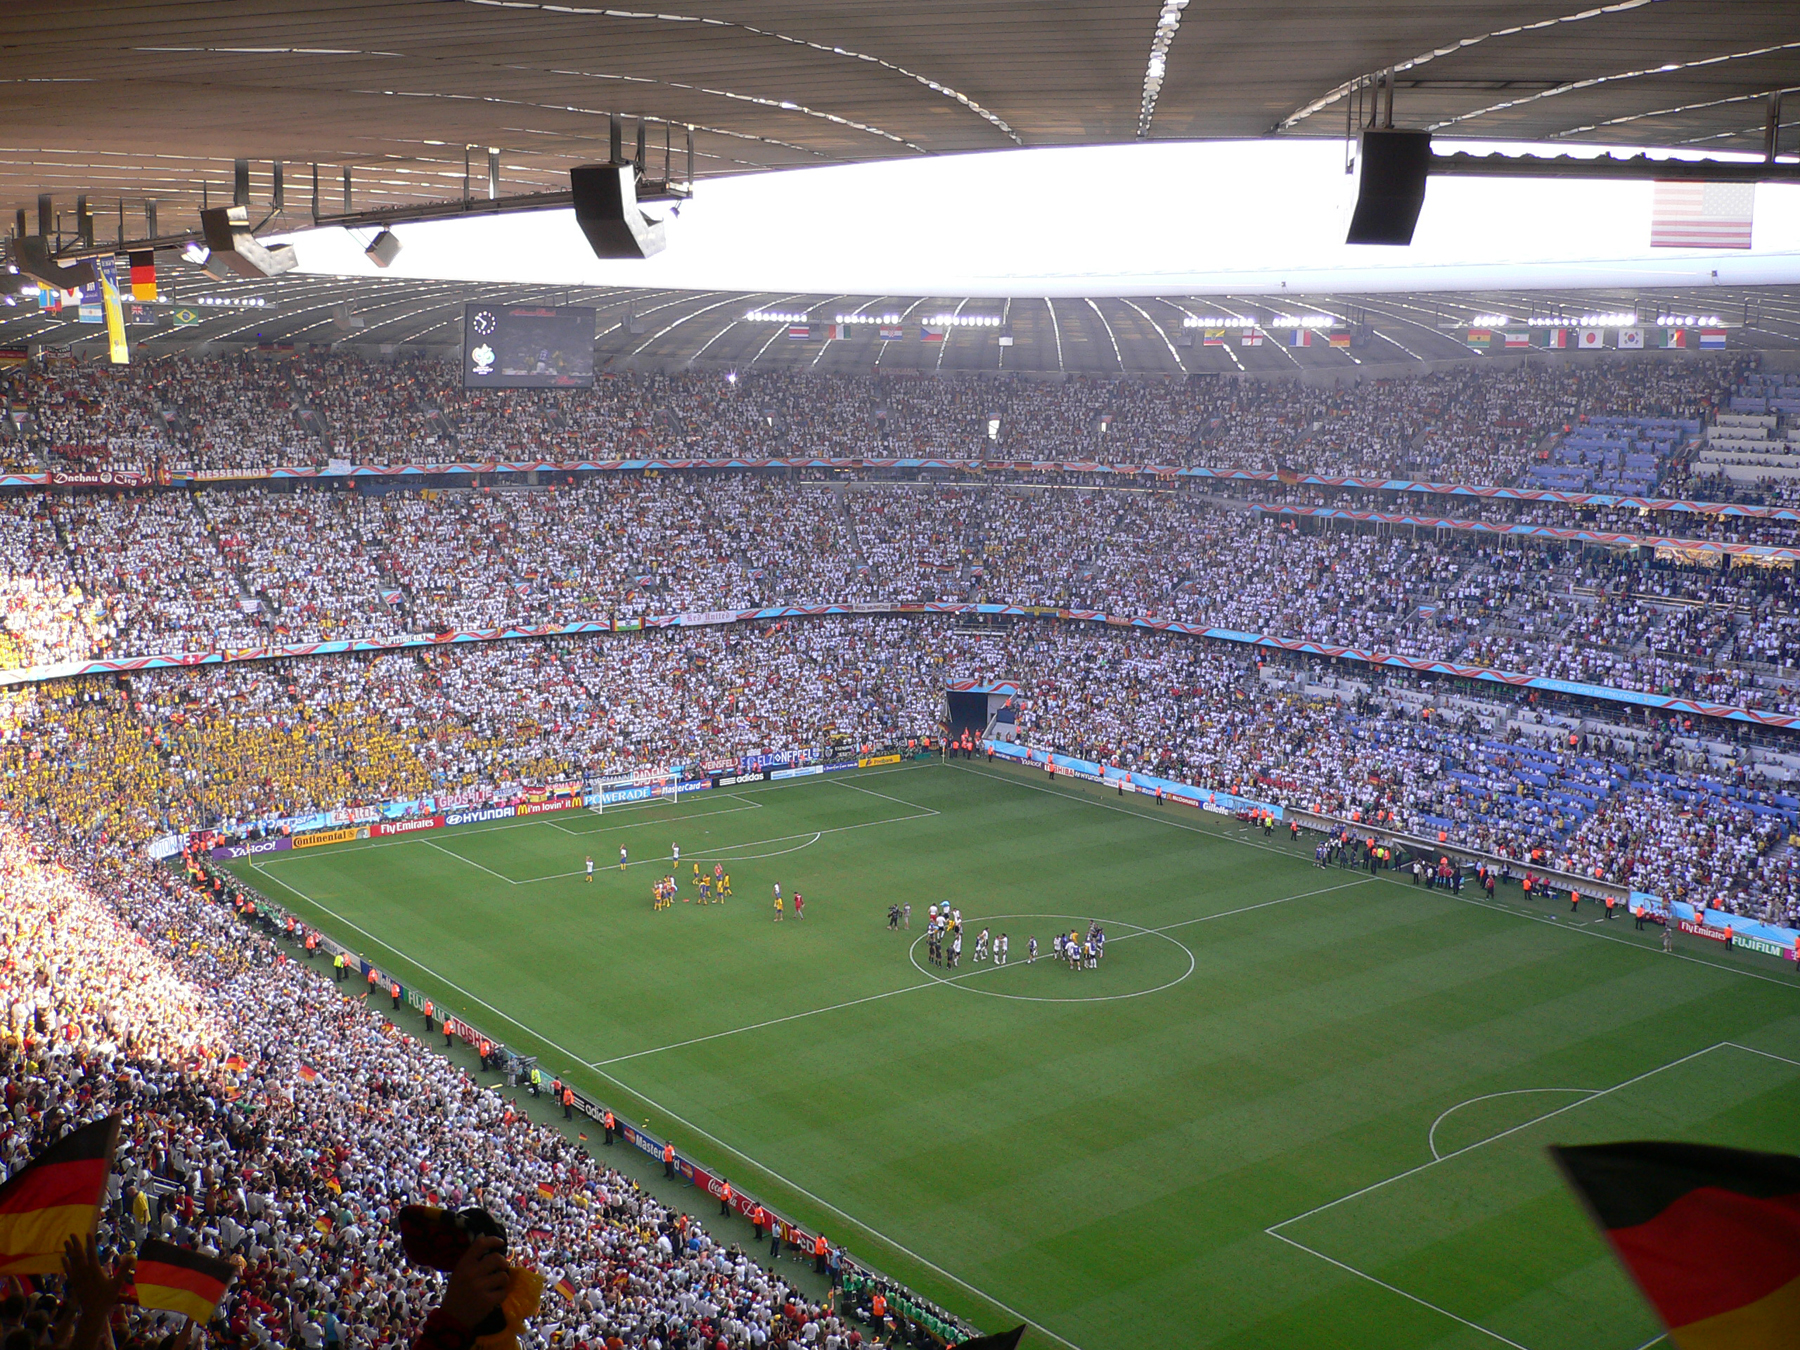 http://www.football-pictures.net/data/media/168/Allianz_Arena_World_Cup.jpg